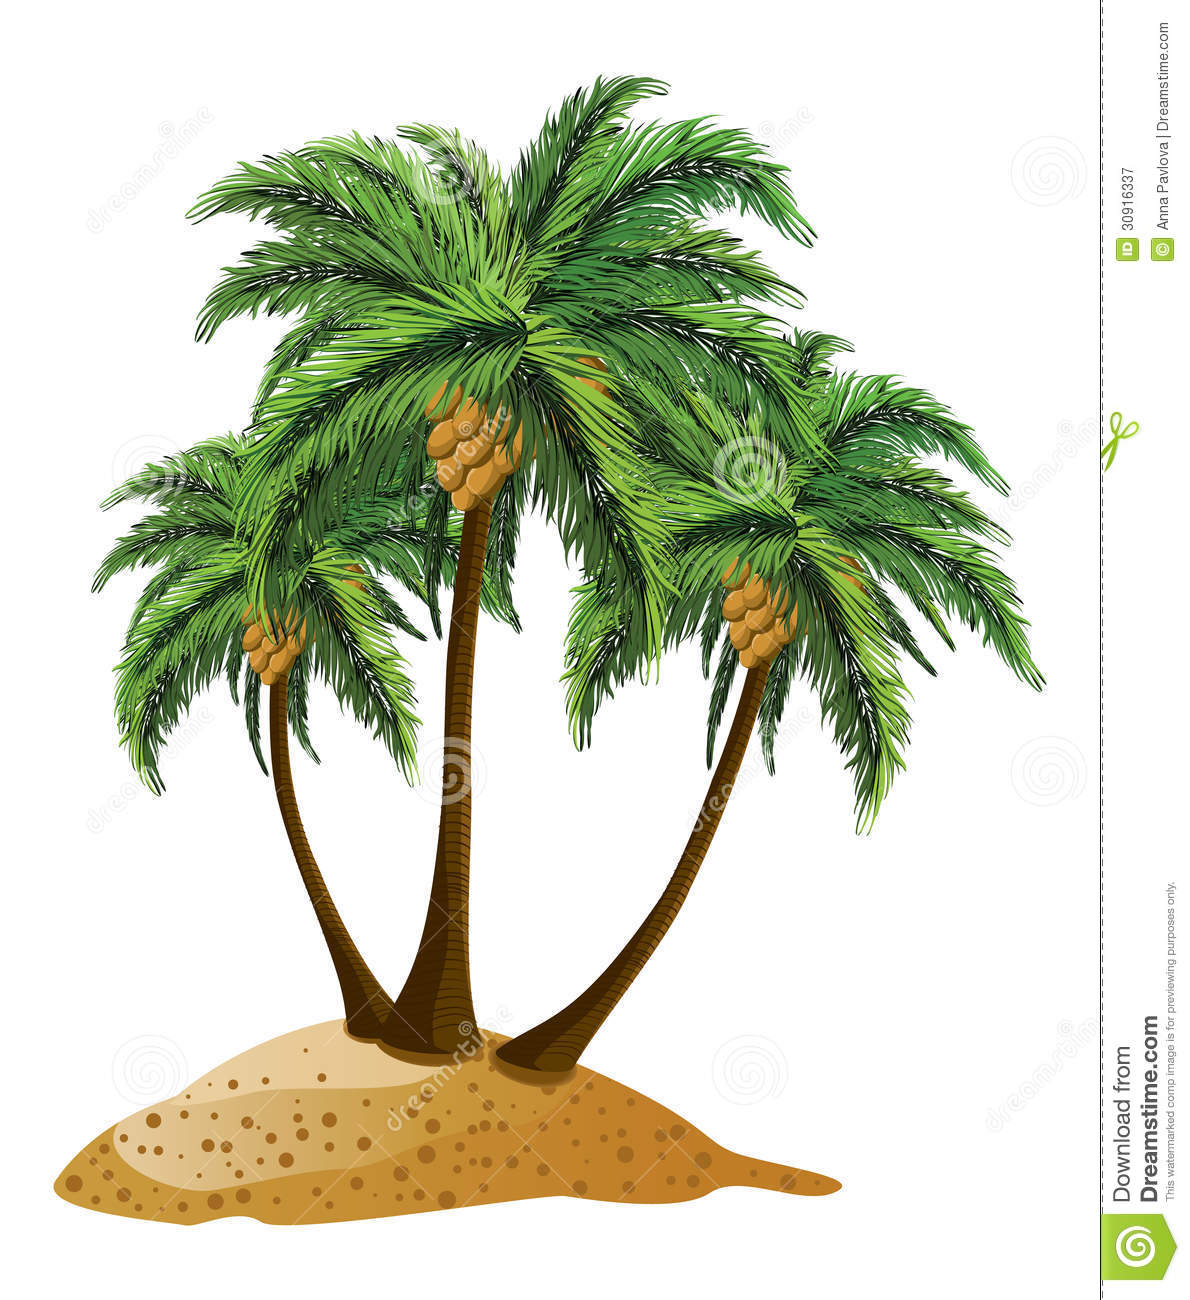 Cartoon Island With Palms Stock Vector. Image Of Island